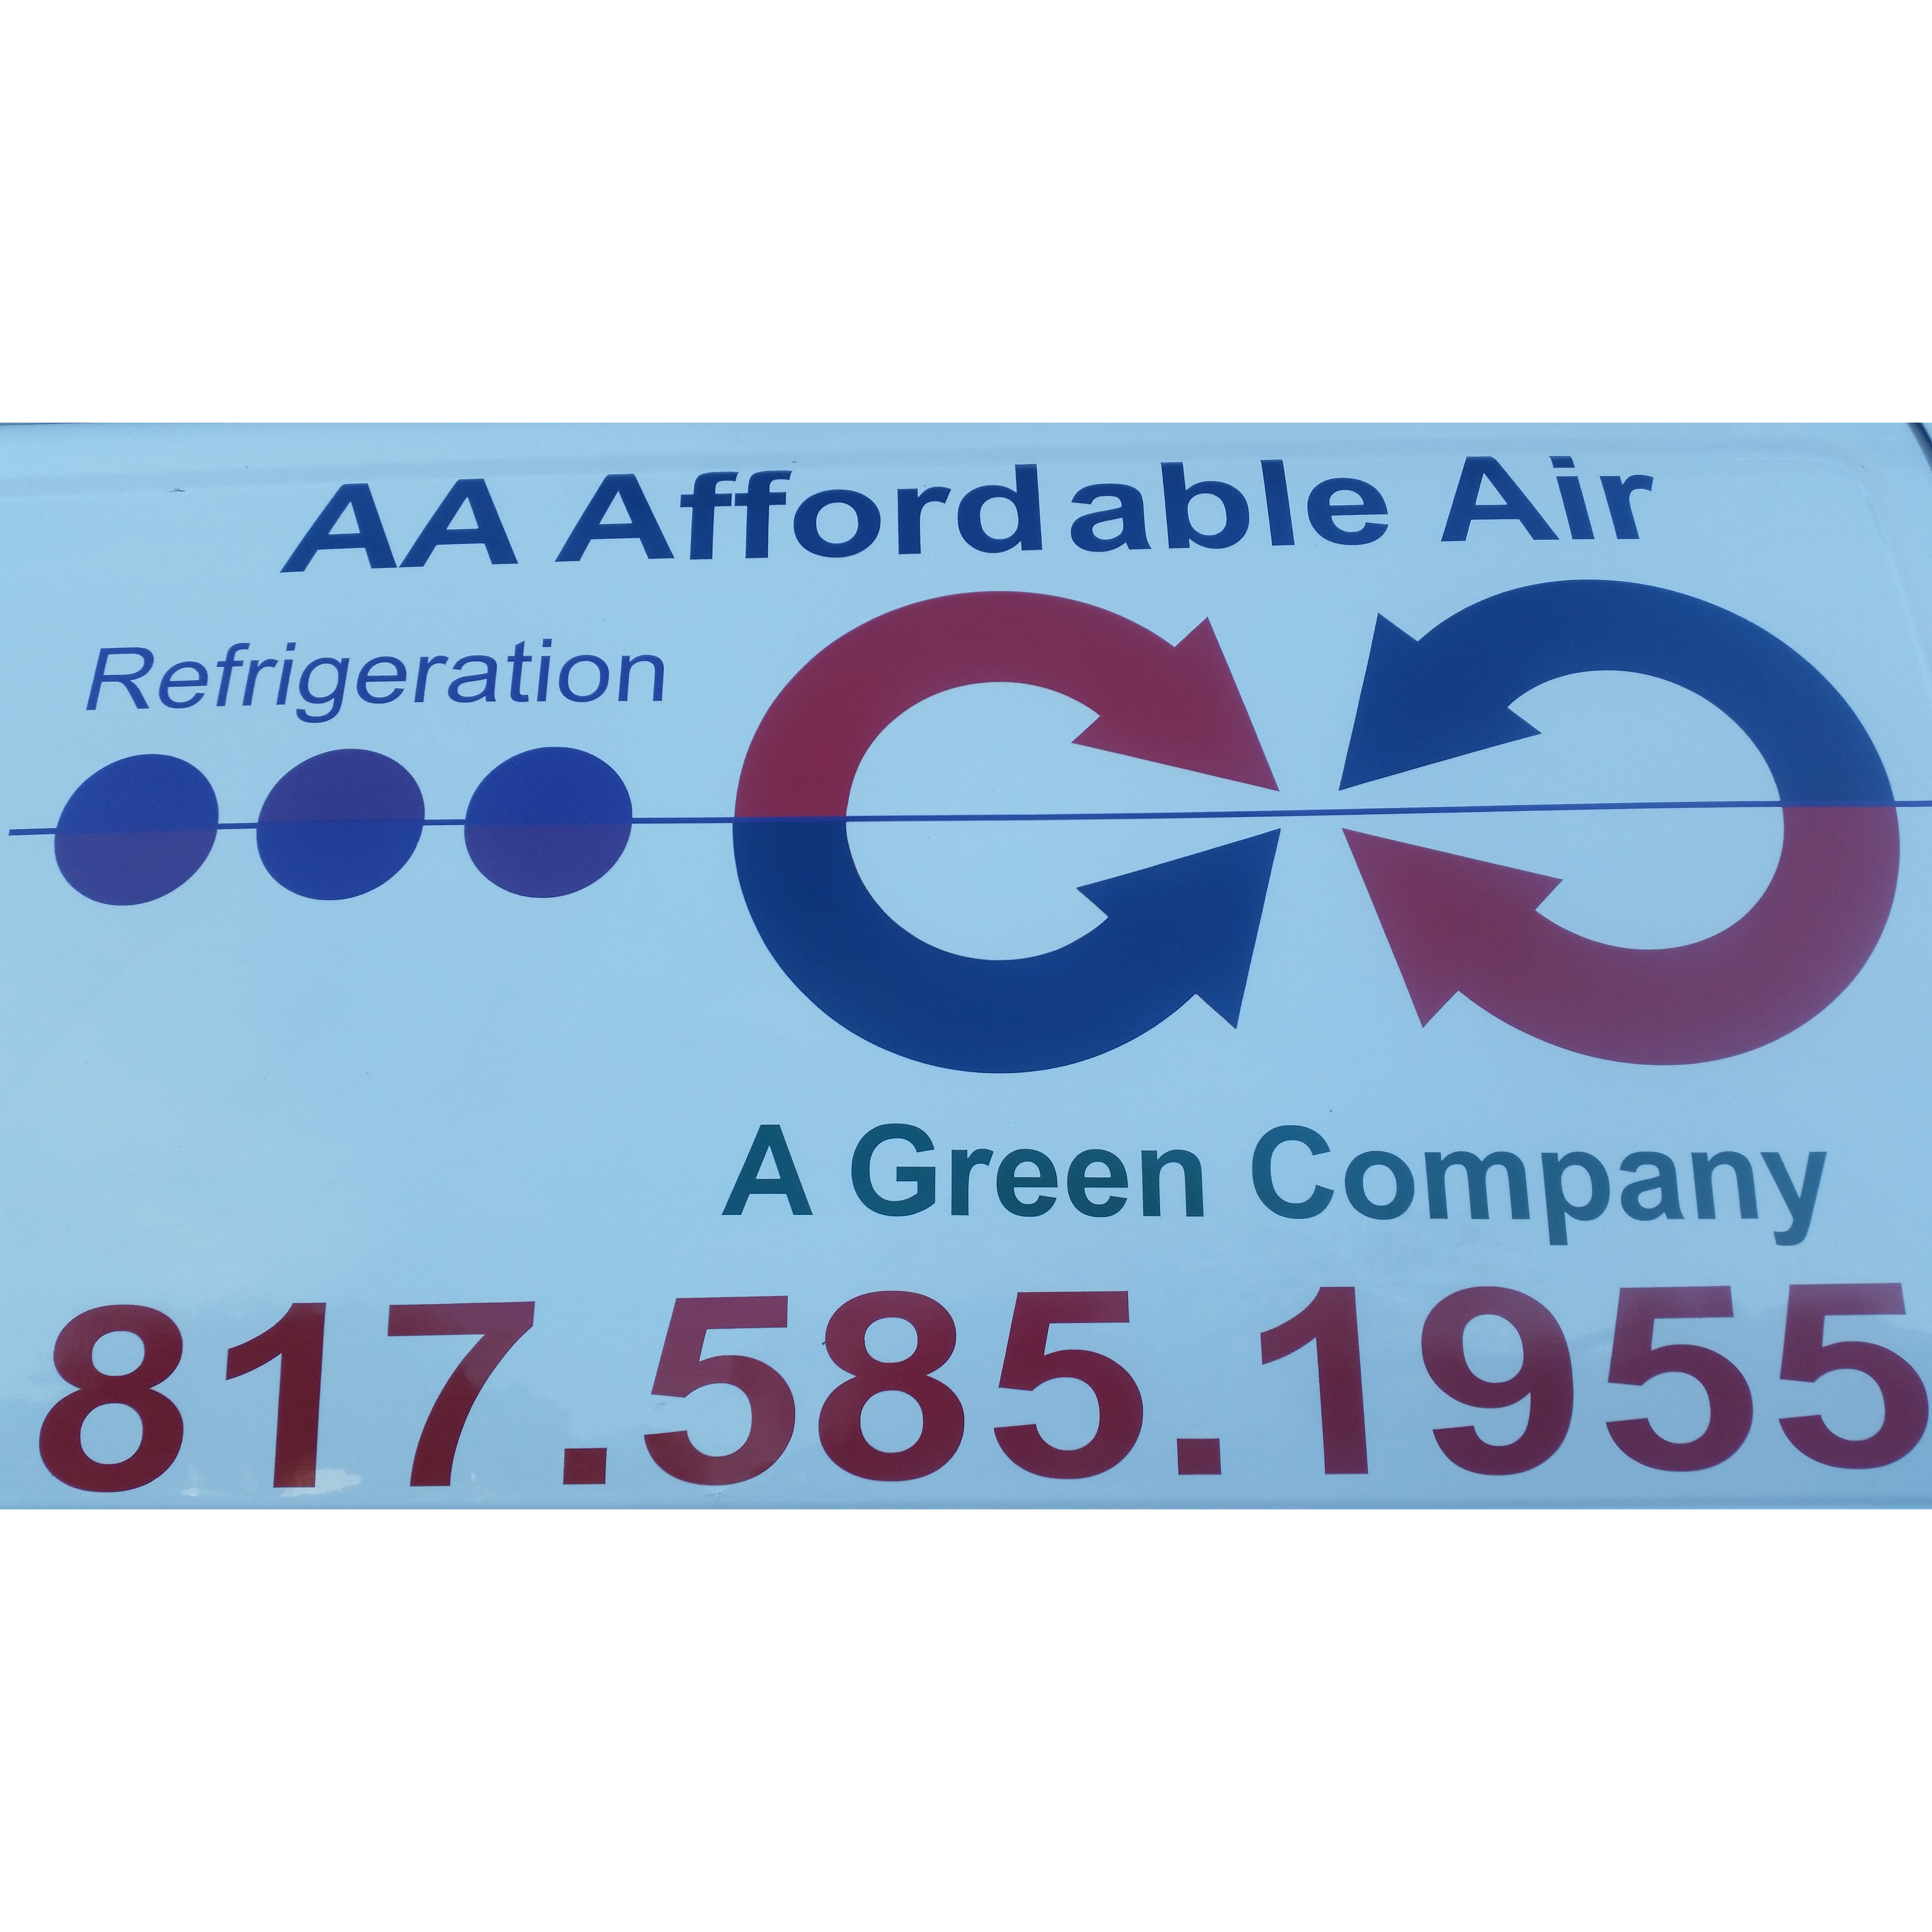 AA Affordable Air